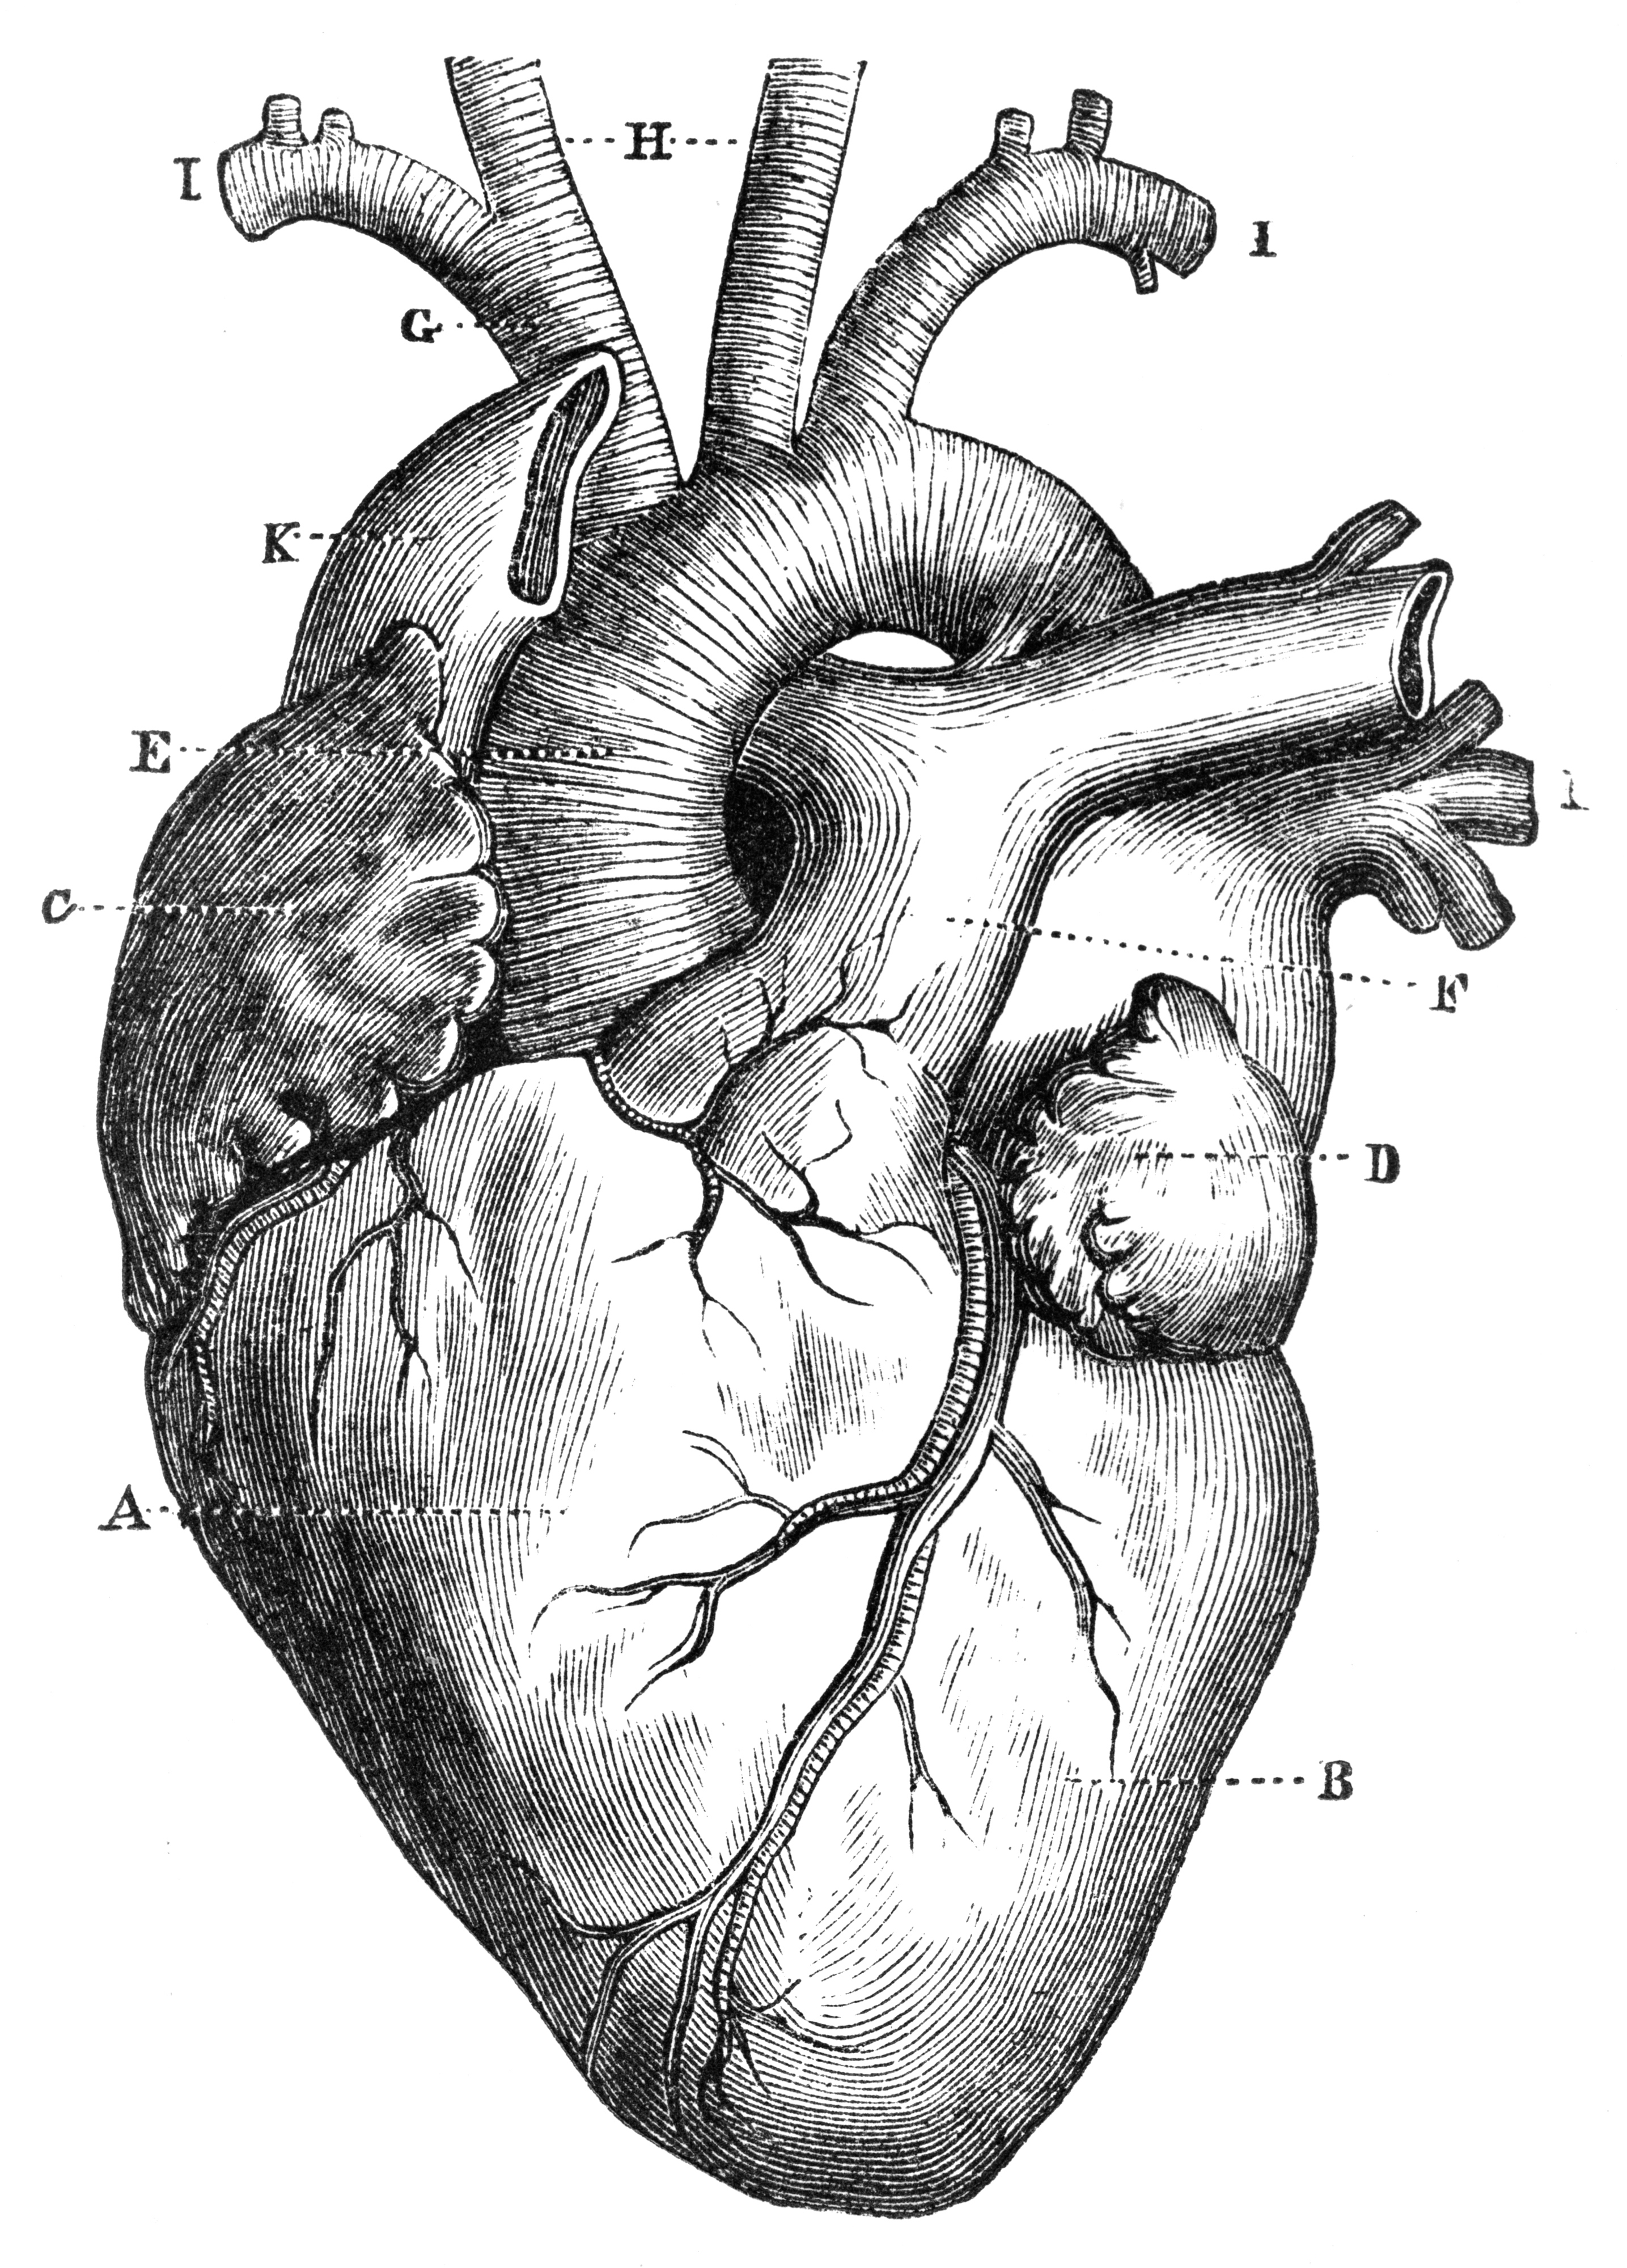 ANATOMY NIGHT: MATTERS OF THE HEART - Brighton Science Festival